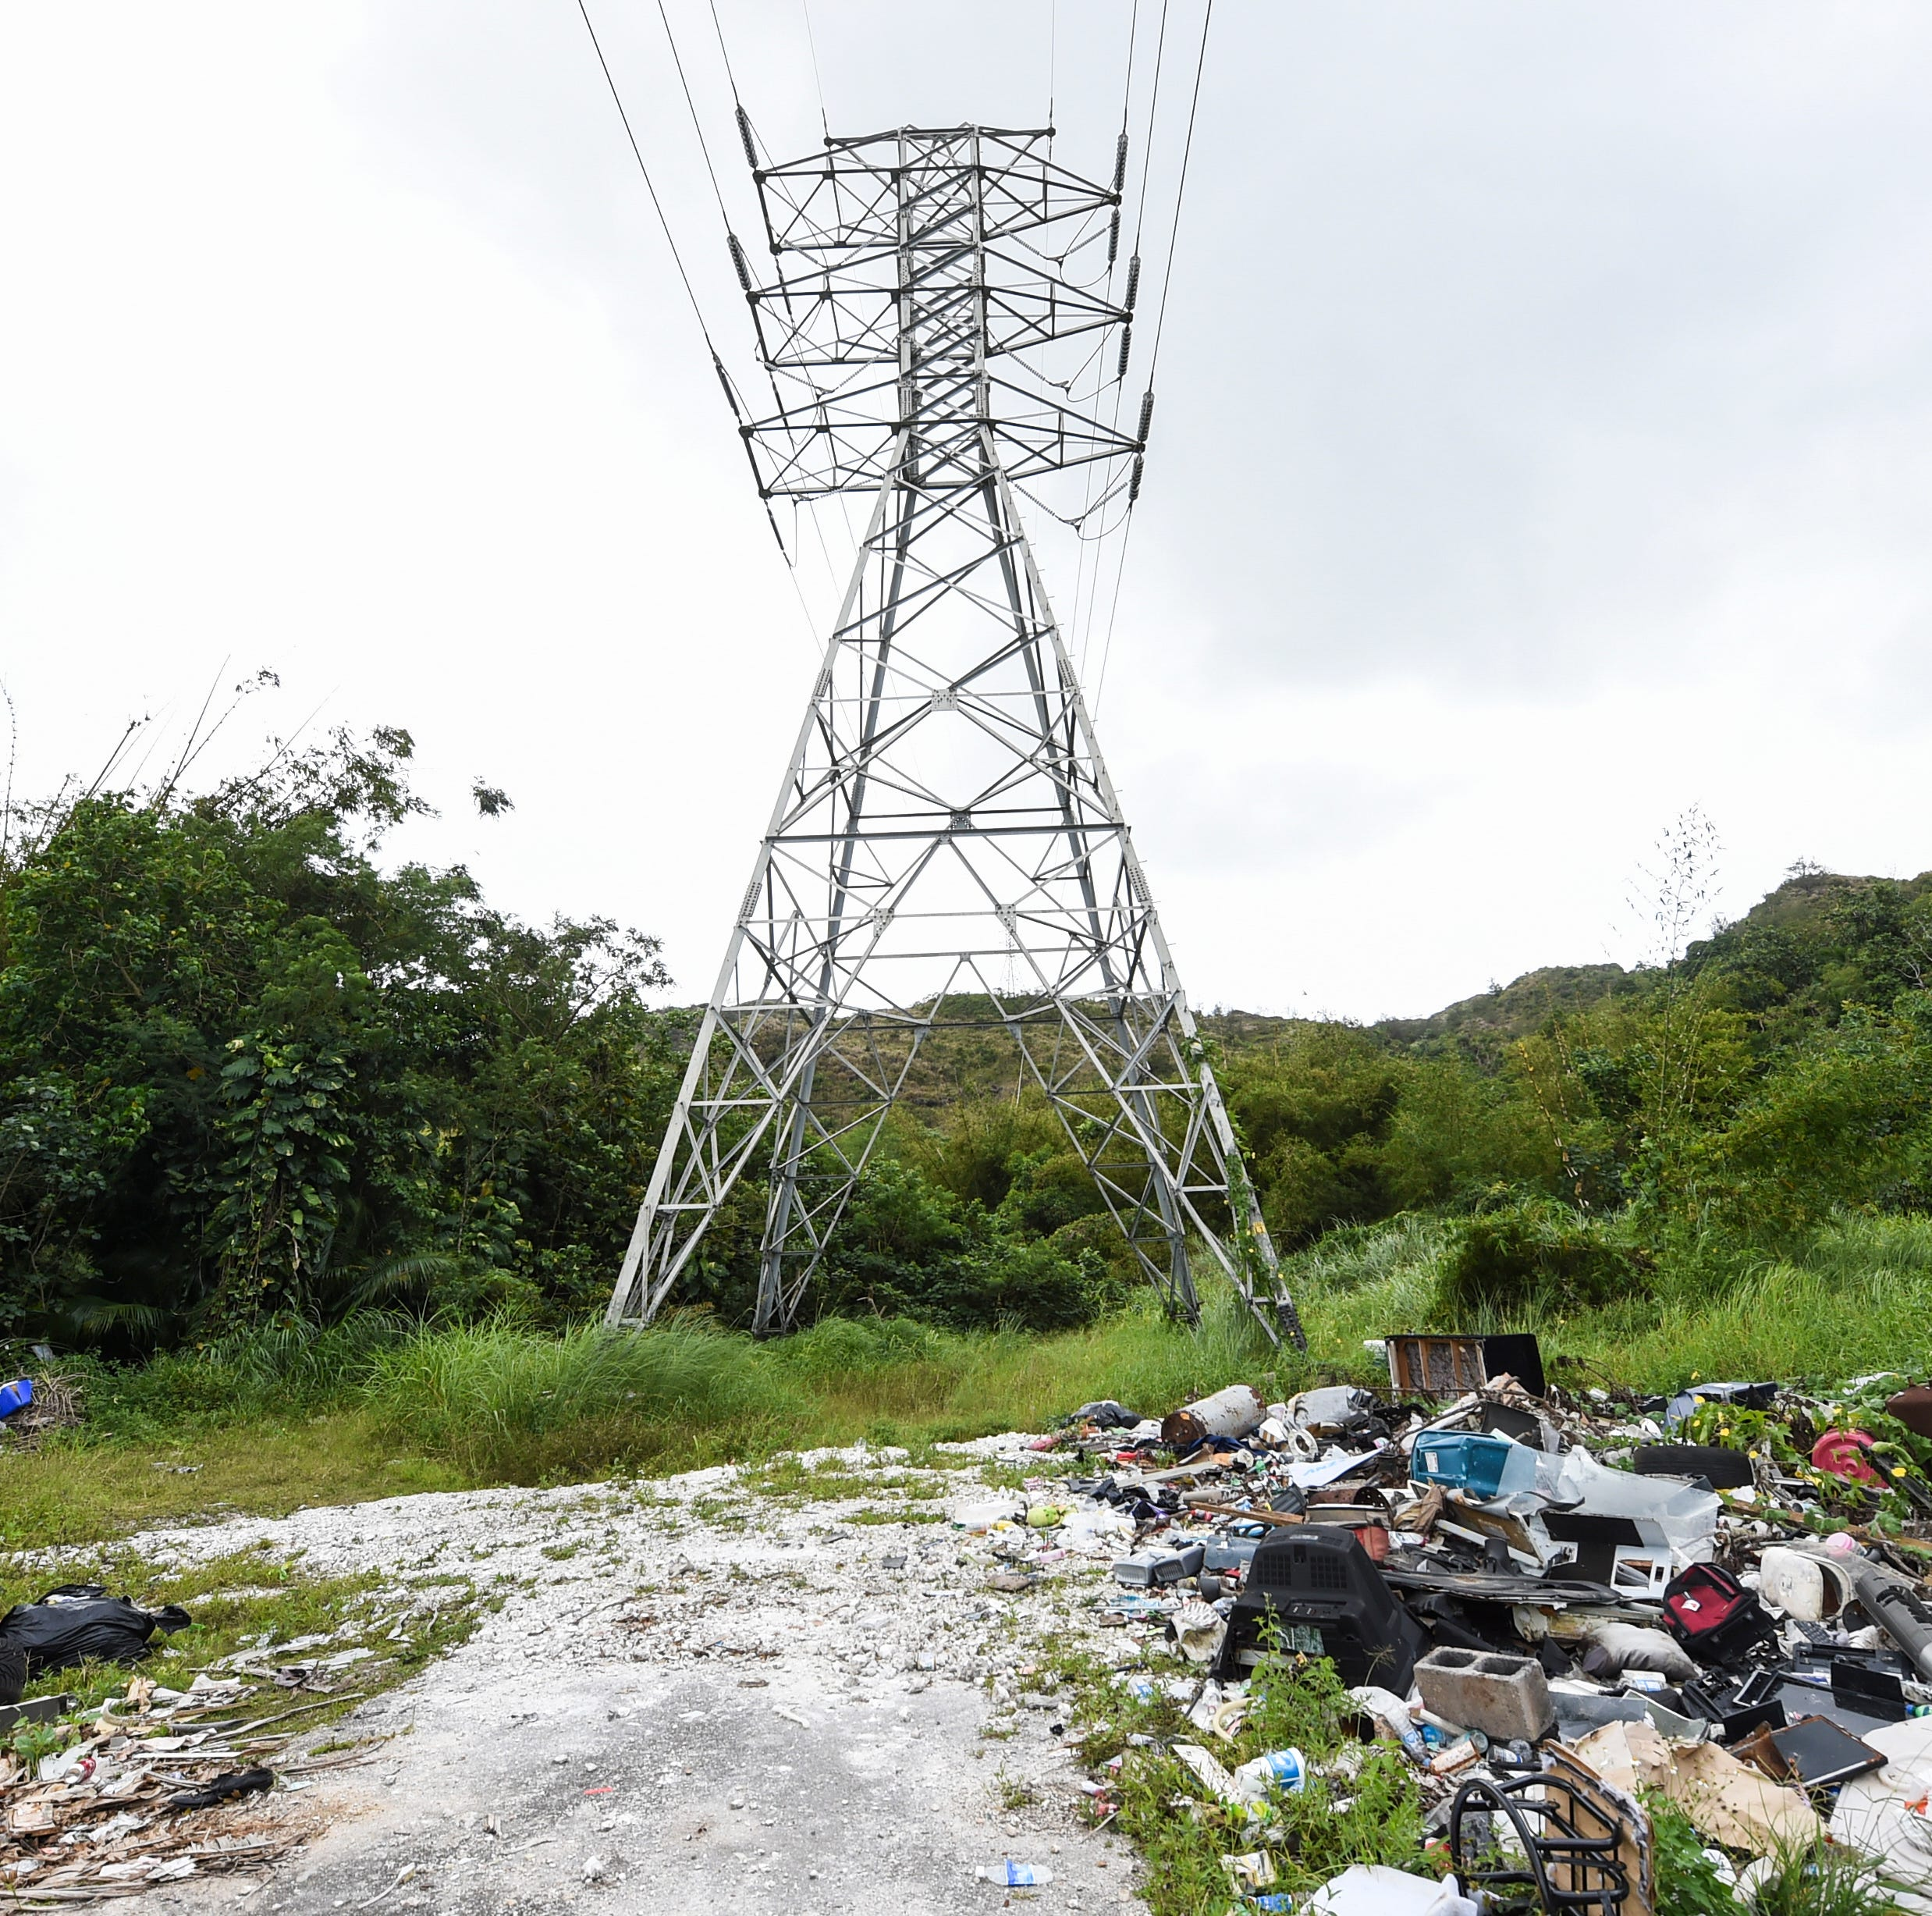 Guam tries to make more laws to protect environment but fails to enforce existing ones